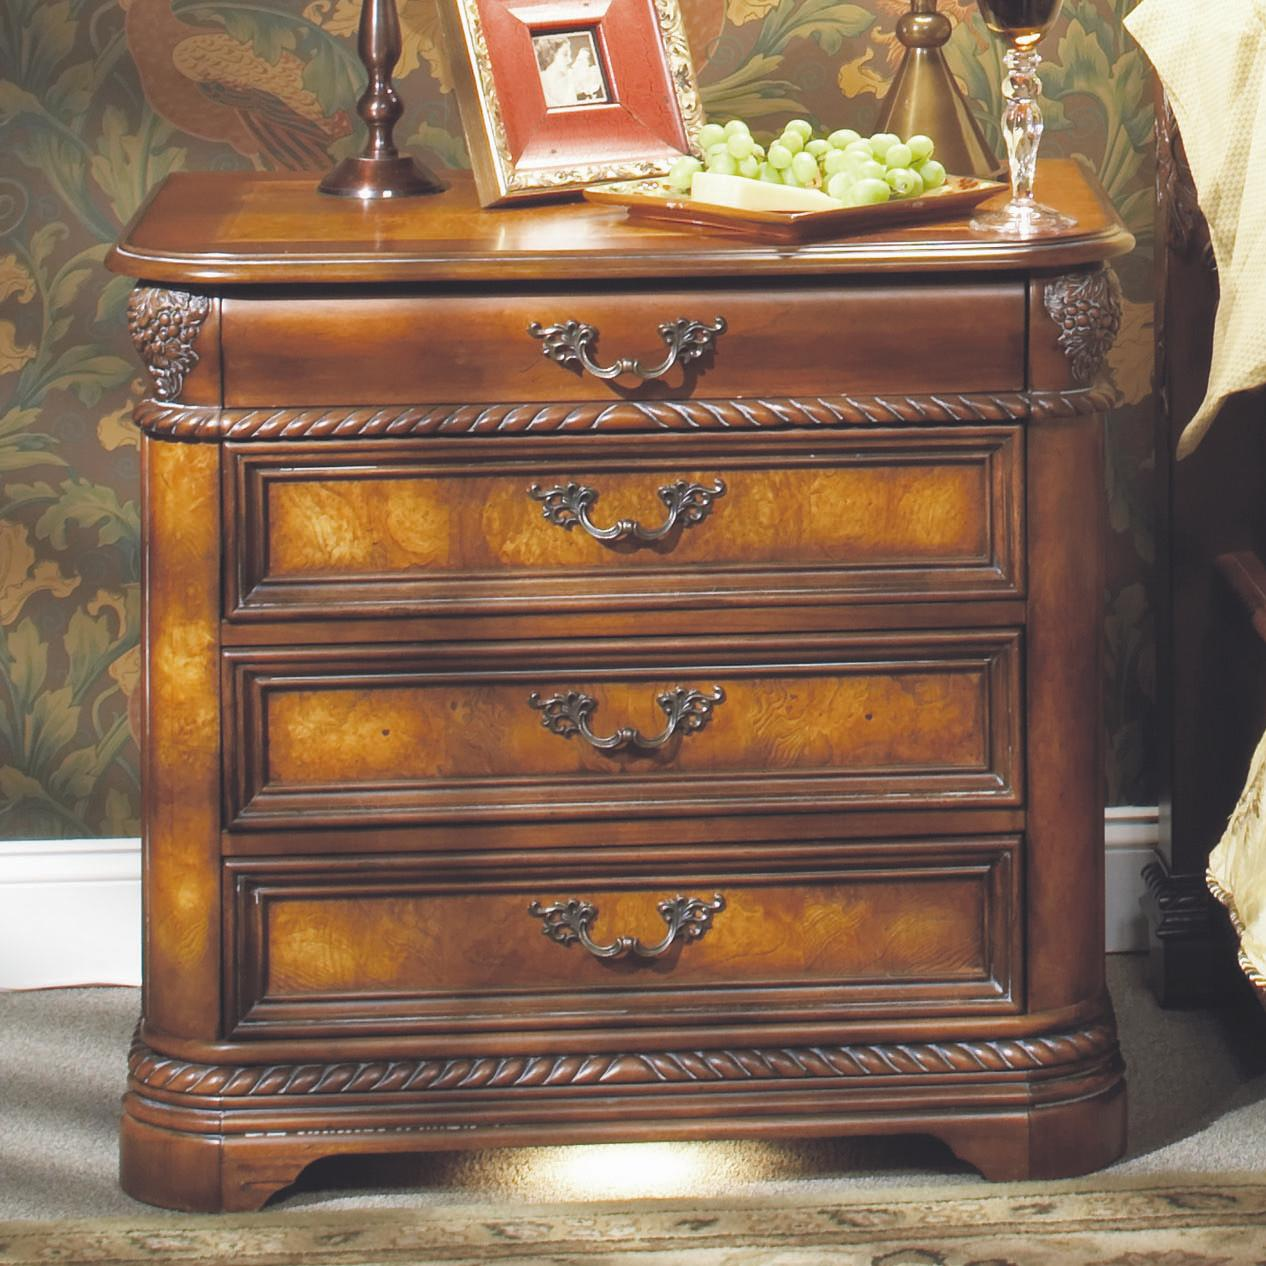 Aspenhome Napa I74 9450 3 Liv360 Nightstand With Pullout Tray Baer 39 S Furniture Night Stand